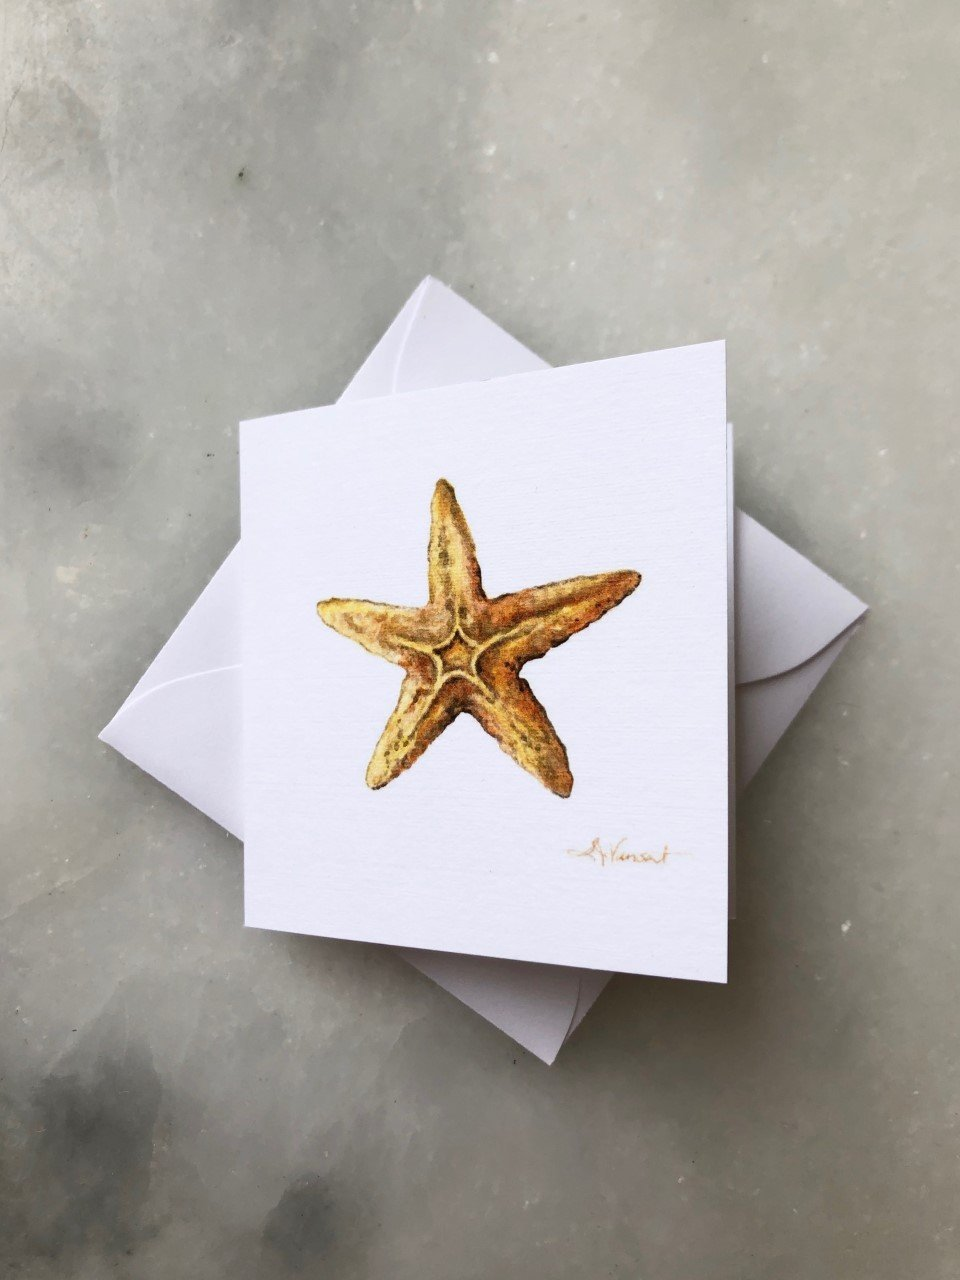 STARFISH ENCLOSURE CARD - Molly's! A Chic and Unique Boutique